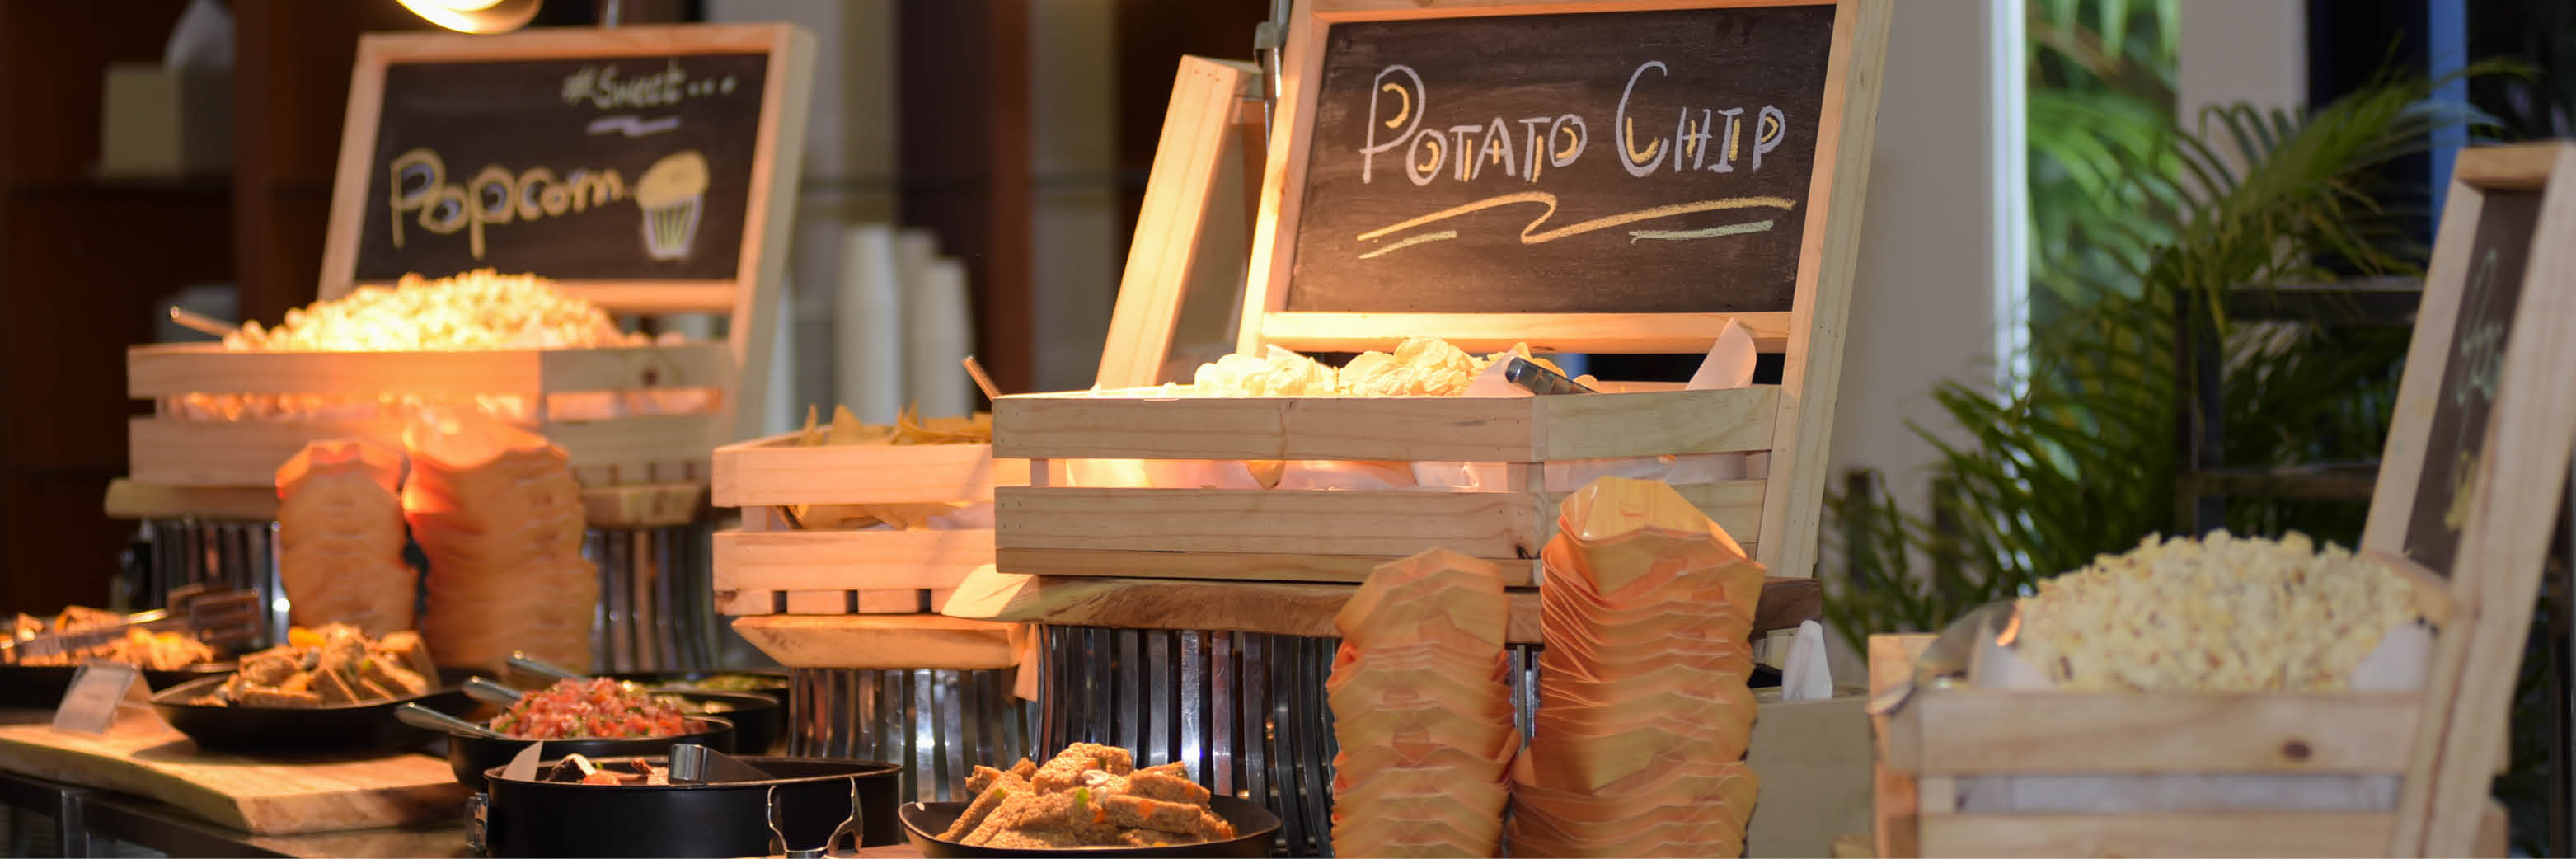 Grab and go food station at an event